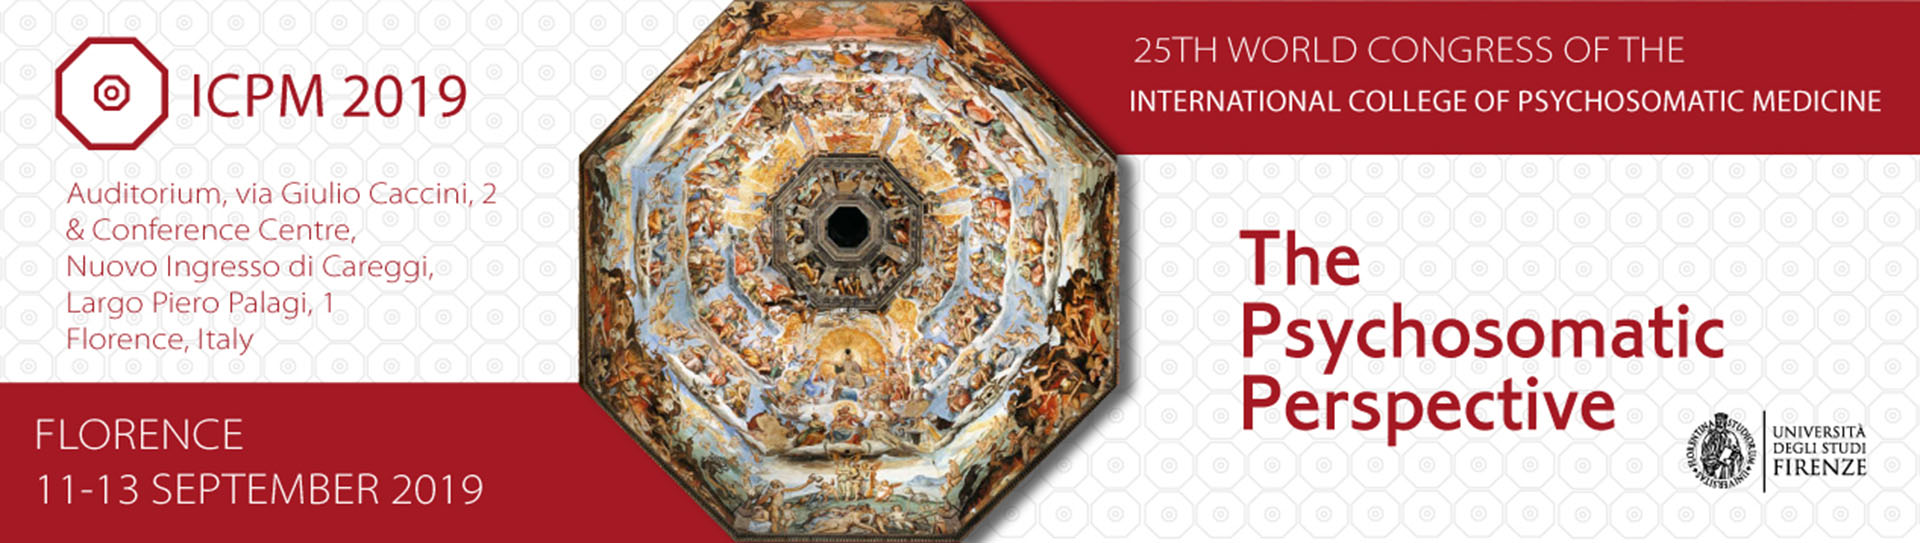 25th World Congress - Florence, Italy - 11/13 September 2019